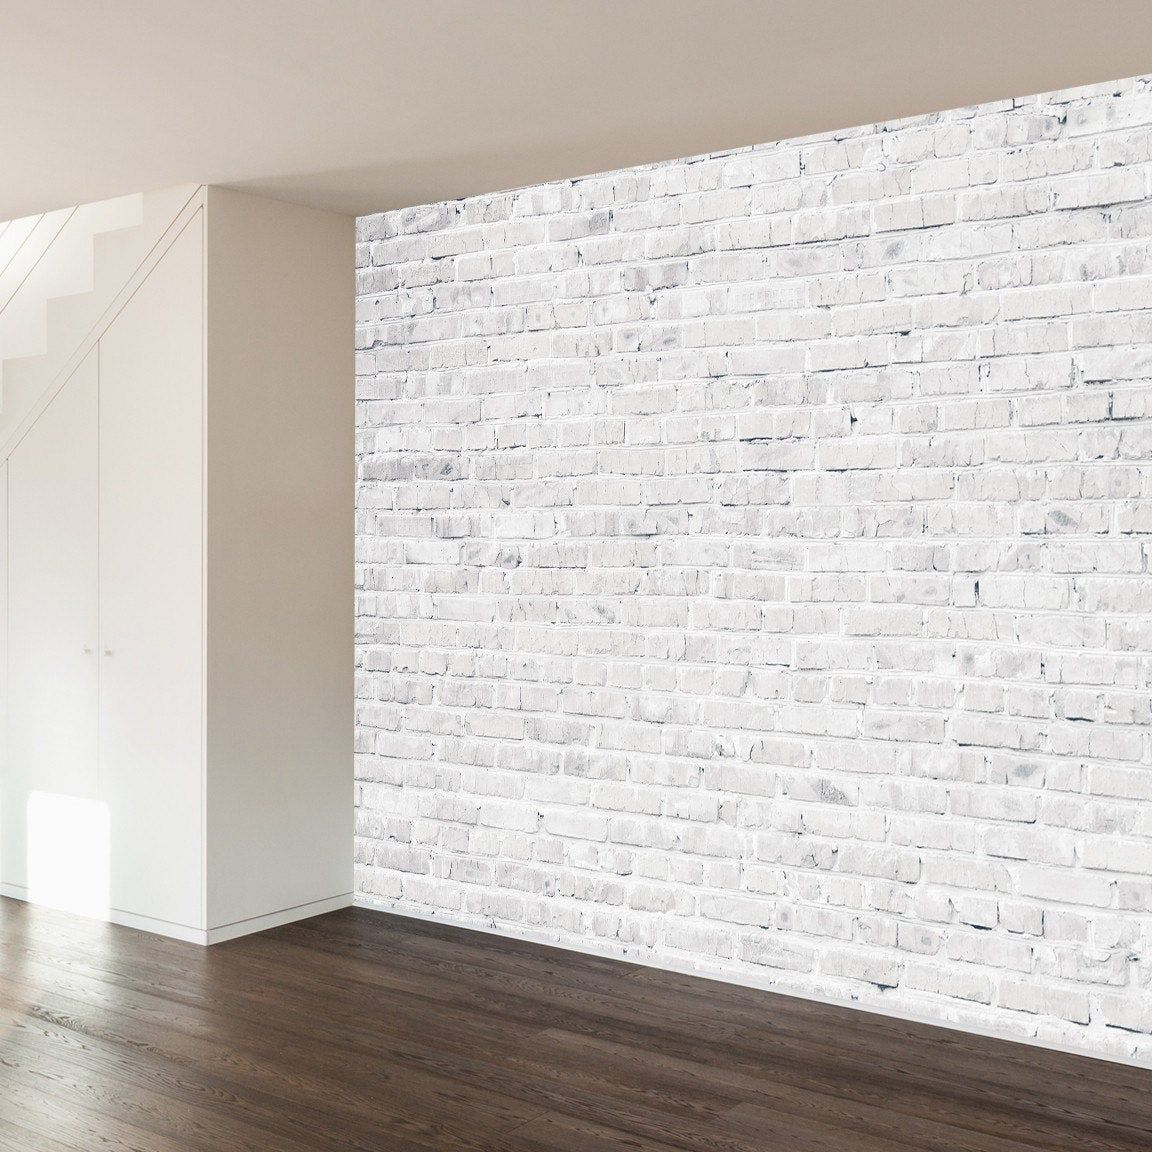 White Washed Brick Removable Wall Mural Decal 4 Panels Pared Removible Paredes De Ladrillo Blanco Pared De Ladrillo Blanco